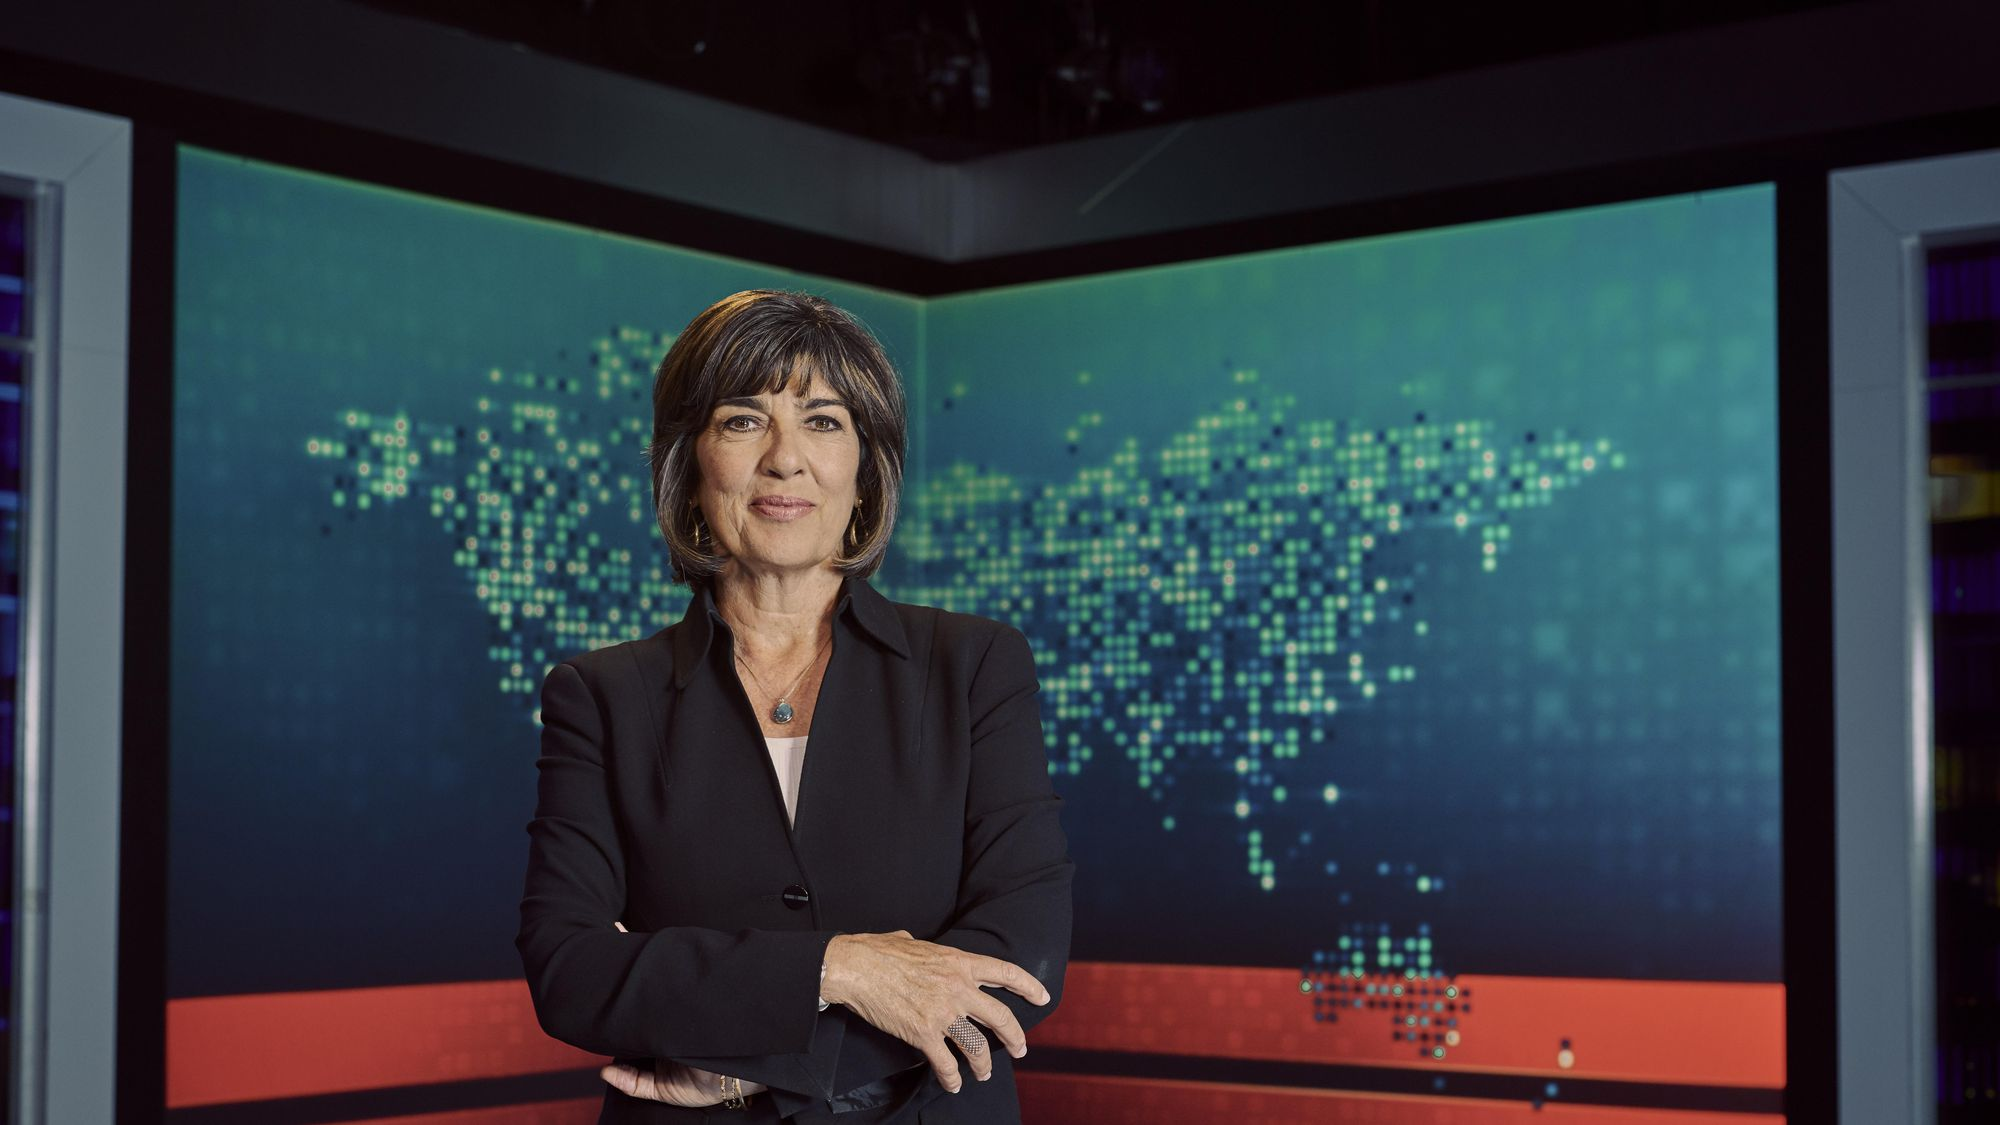 In 'Despicable' Comparison, CNN's Christine Amanpour Says Trump is Like Hitler